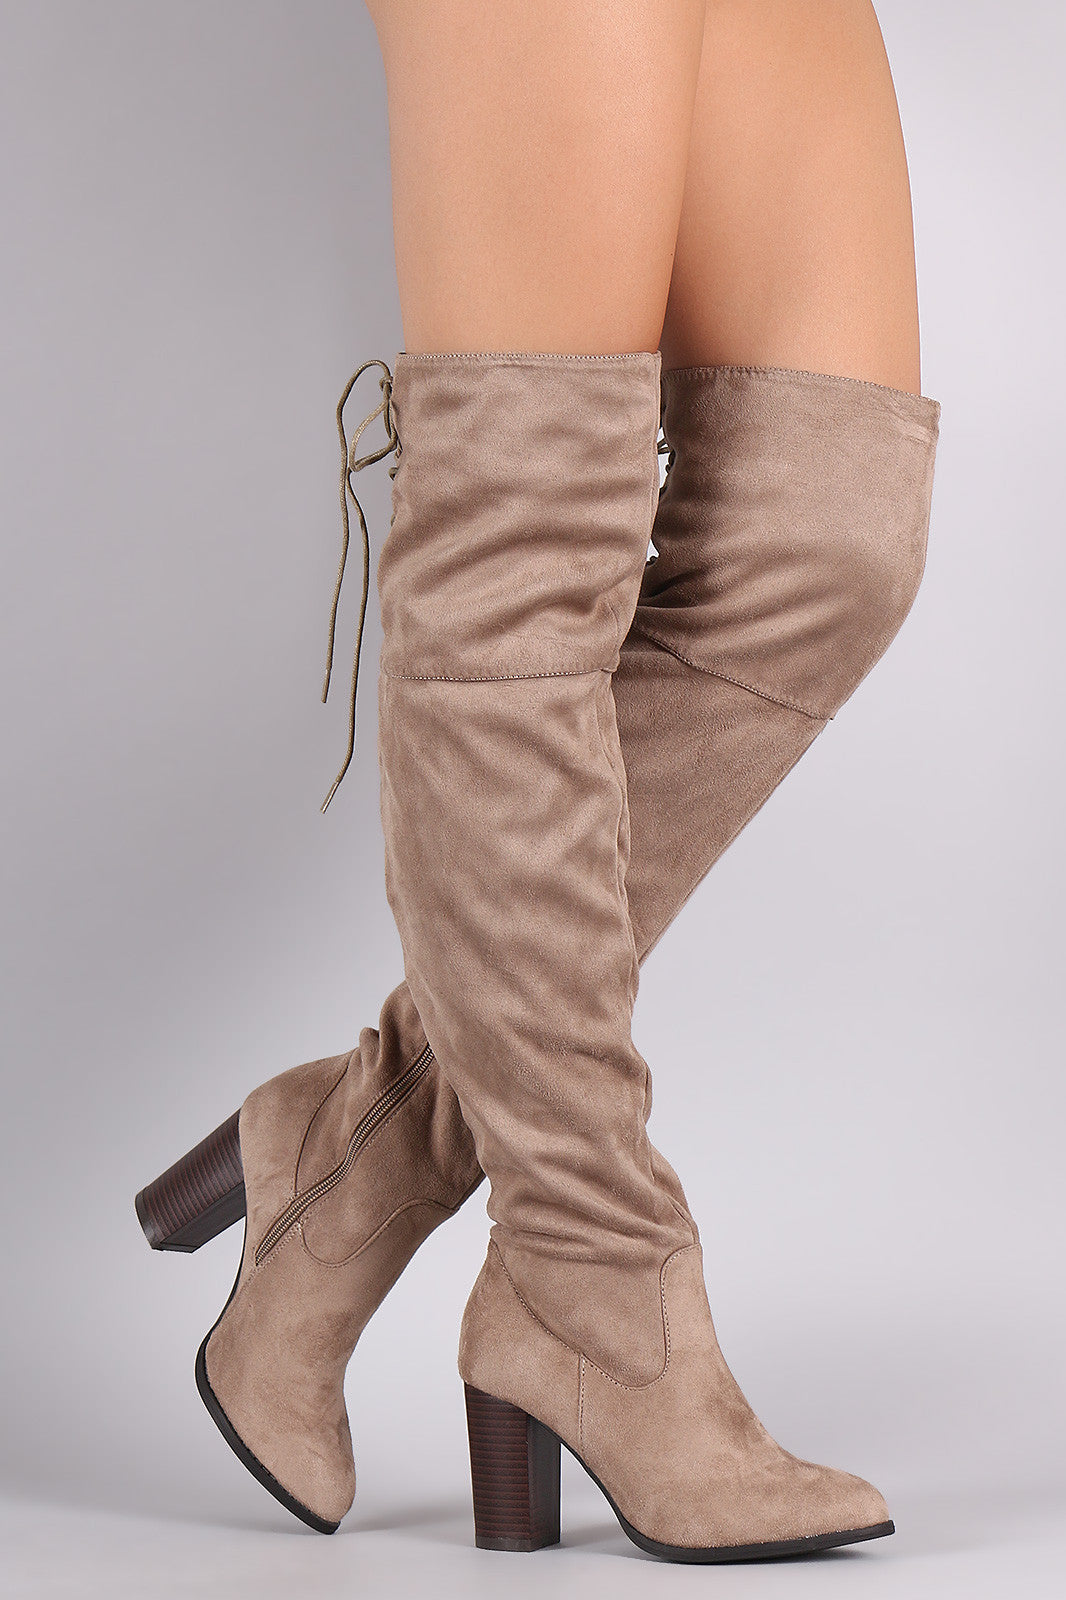 Back lace up boots - Qupid Suede Back Lace Up Chunky Heeled Over The Knee Boots